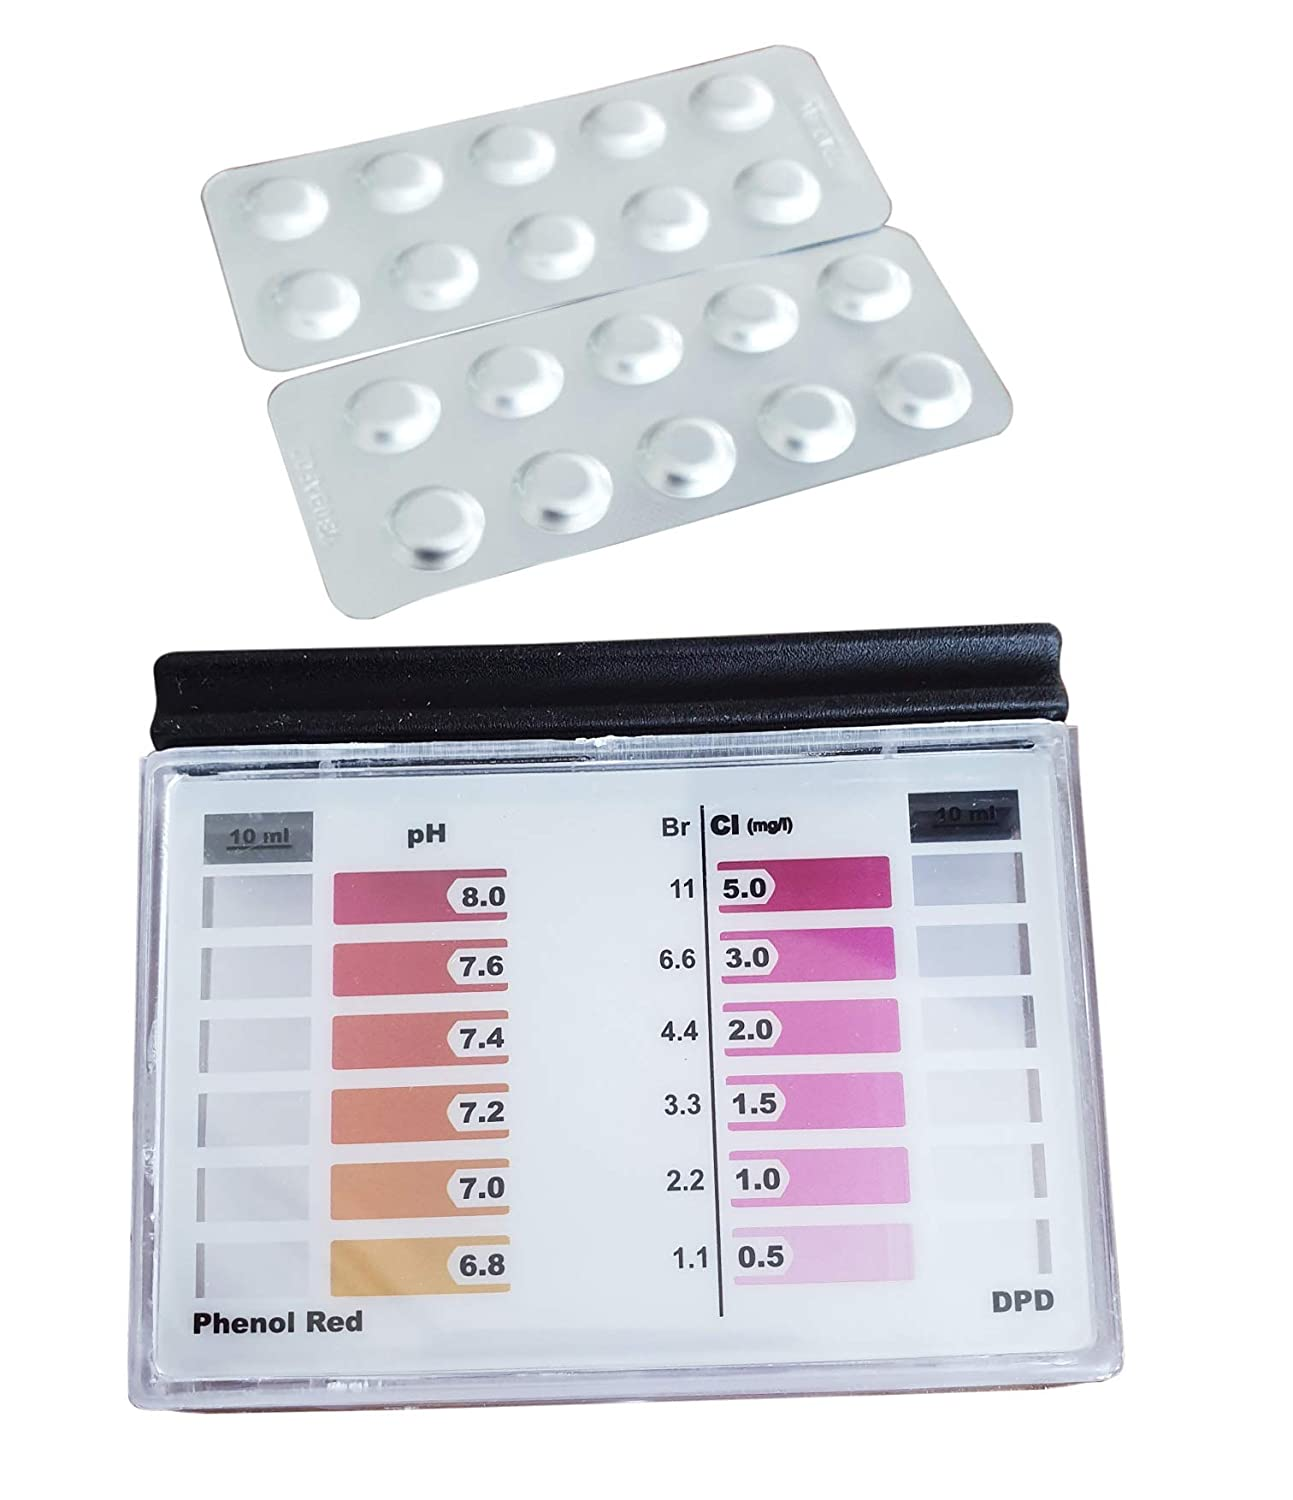 Powerhaus24 100x Rapid Test Tablets with 50x pH Phenol Red and 50x DPD1 Chlorine